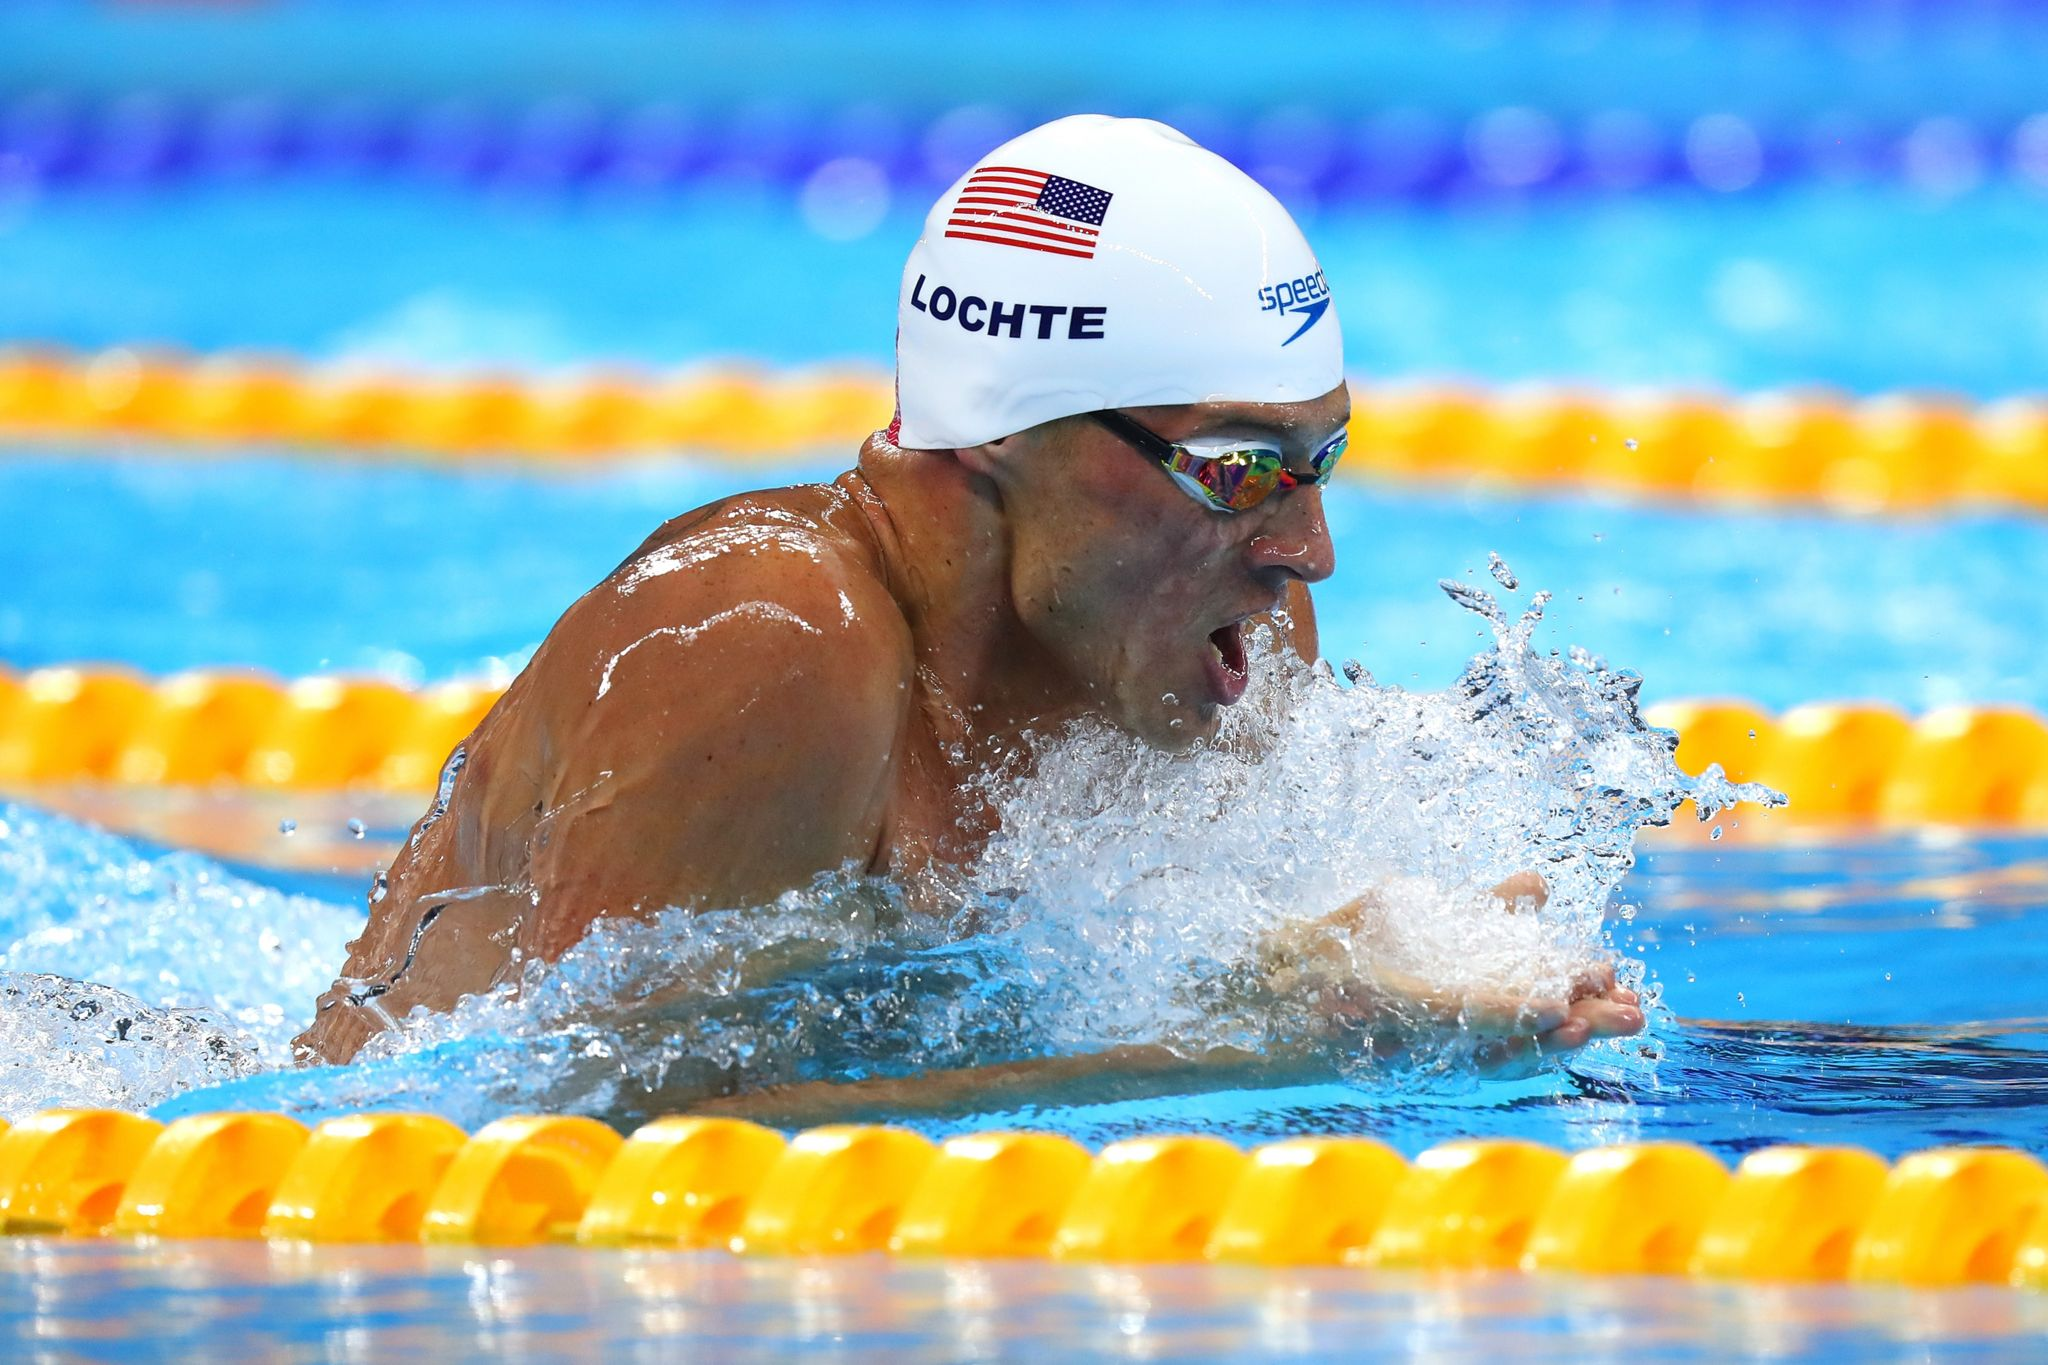 Ryan Lochte of the United States in the Men's 200m Individual Medley heat on Day 5 of the Rio 2016 Olympic Games at the Olympic Aquatics Stadium on August 10, 2016